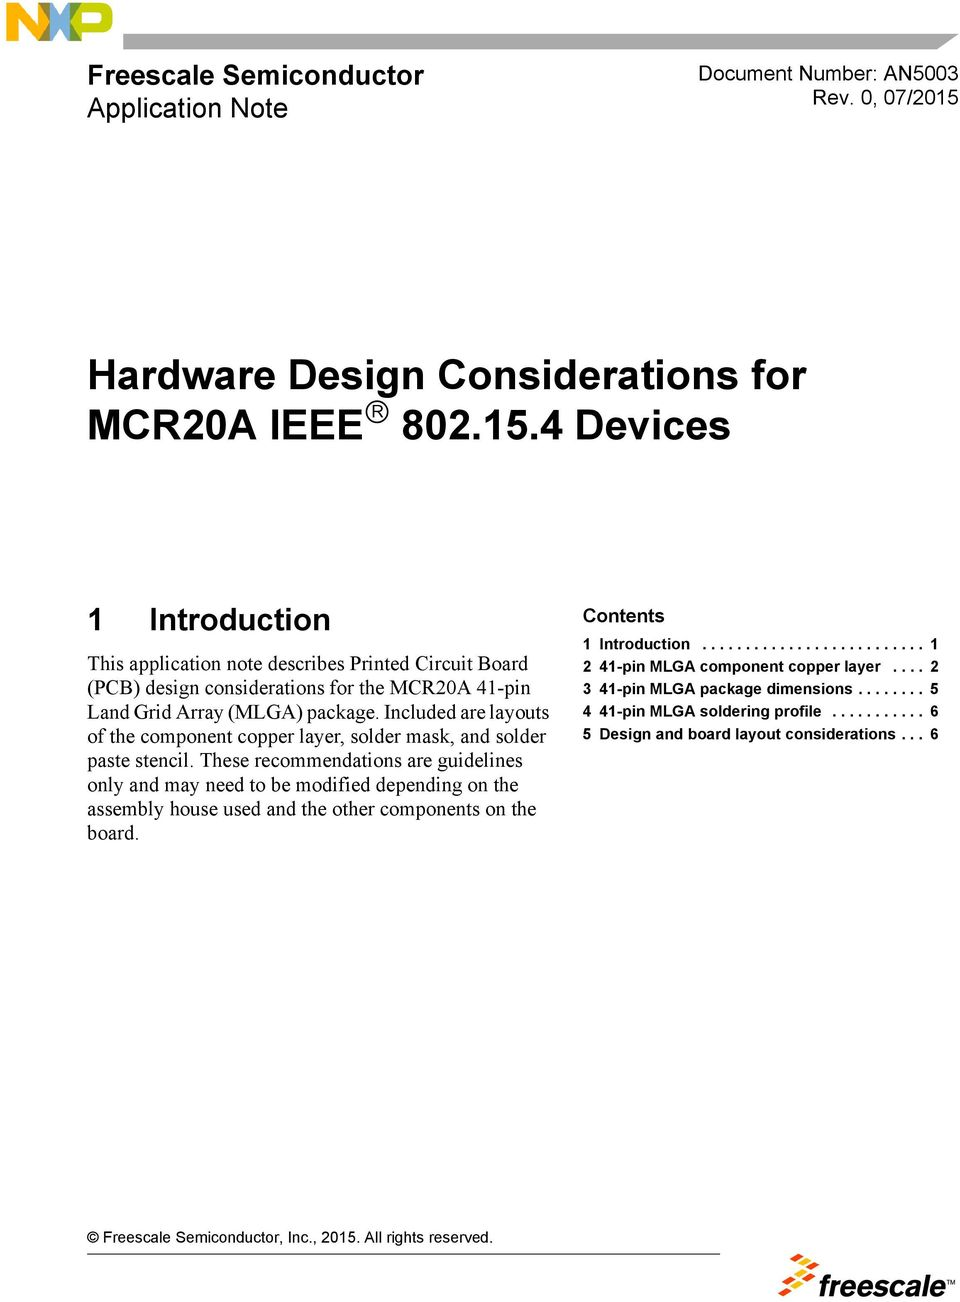 4 Devices 1 Introduction This application note describes Printed Circuit Board (PCB) design considerations for the MCR20A 41-pin Land Grid Array (MLGA) package.